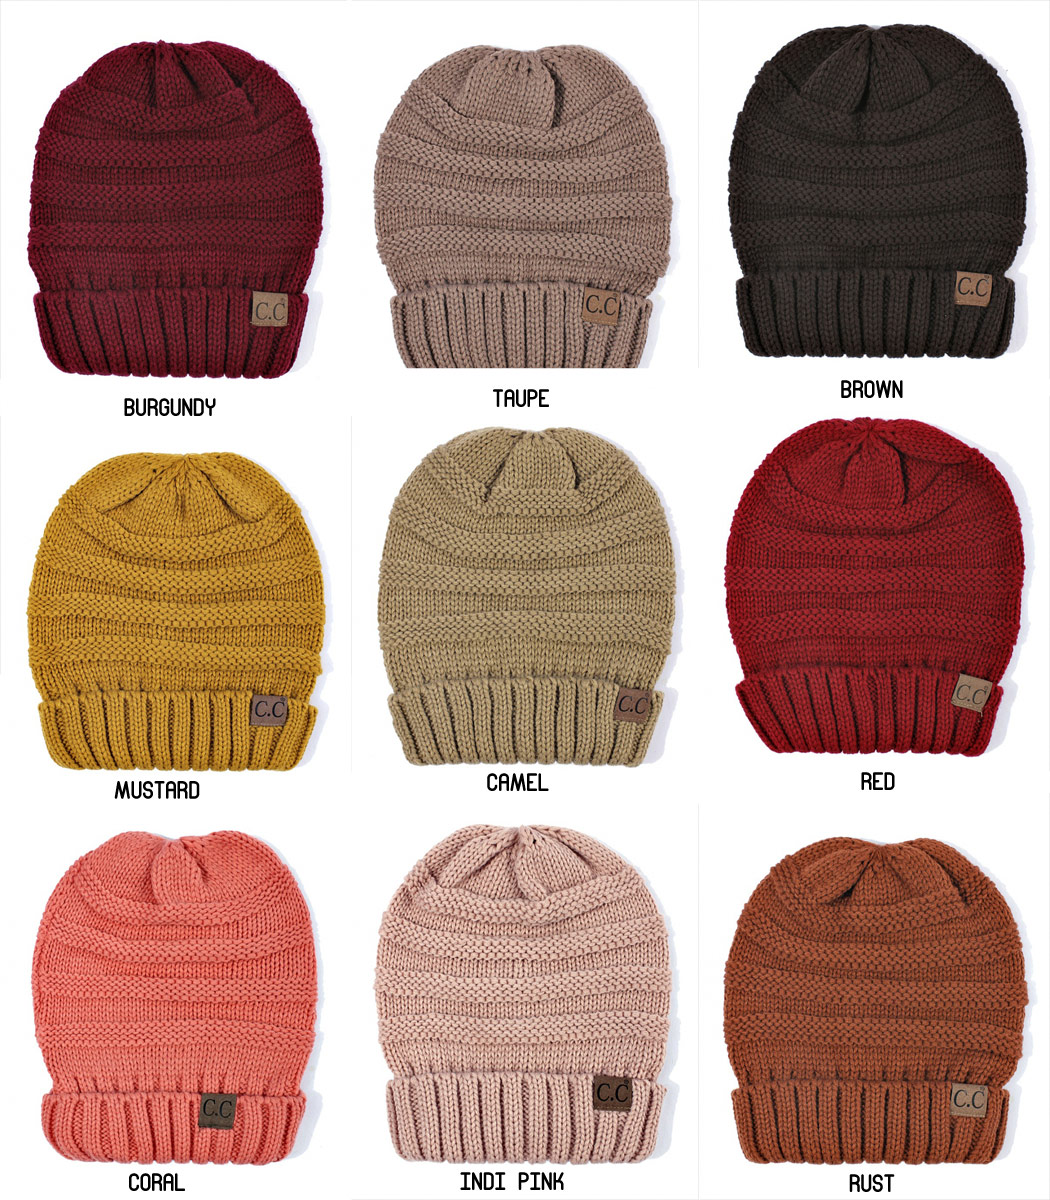 Solid Color Slouchy CC Beanie Hat inset 1 ... 3943ad64e391